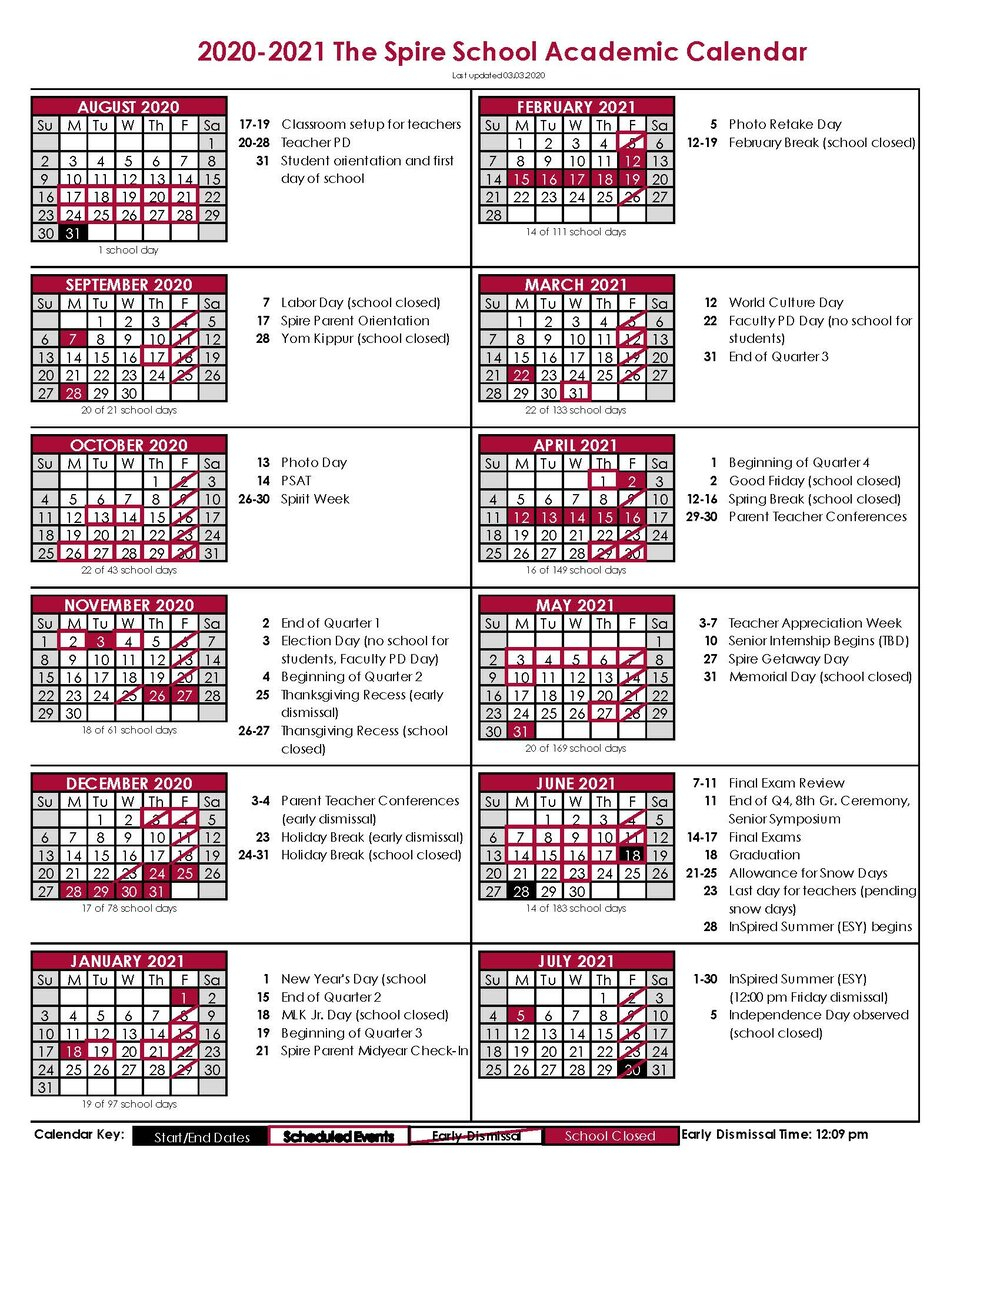 Academic Calendar — The Spire School Throughout Academic Calender For Middlesex County College For 2021